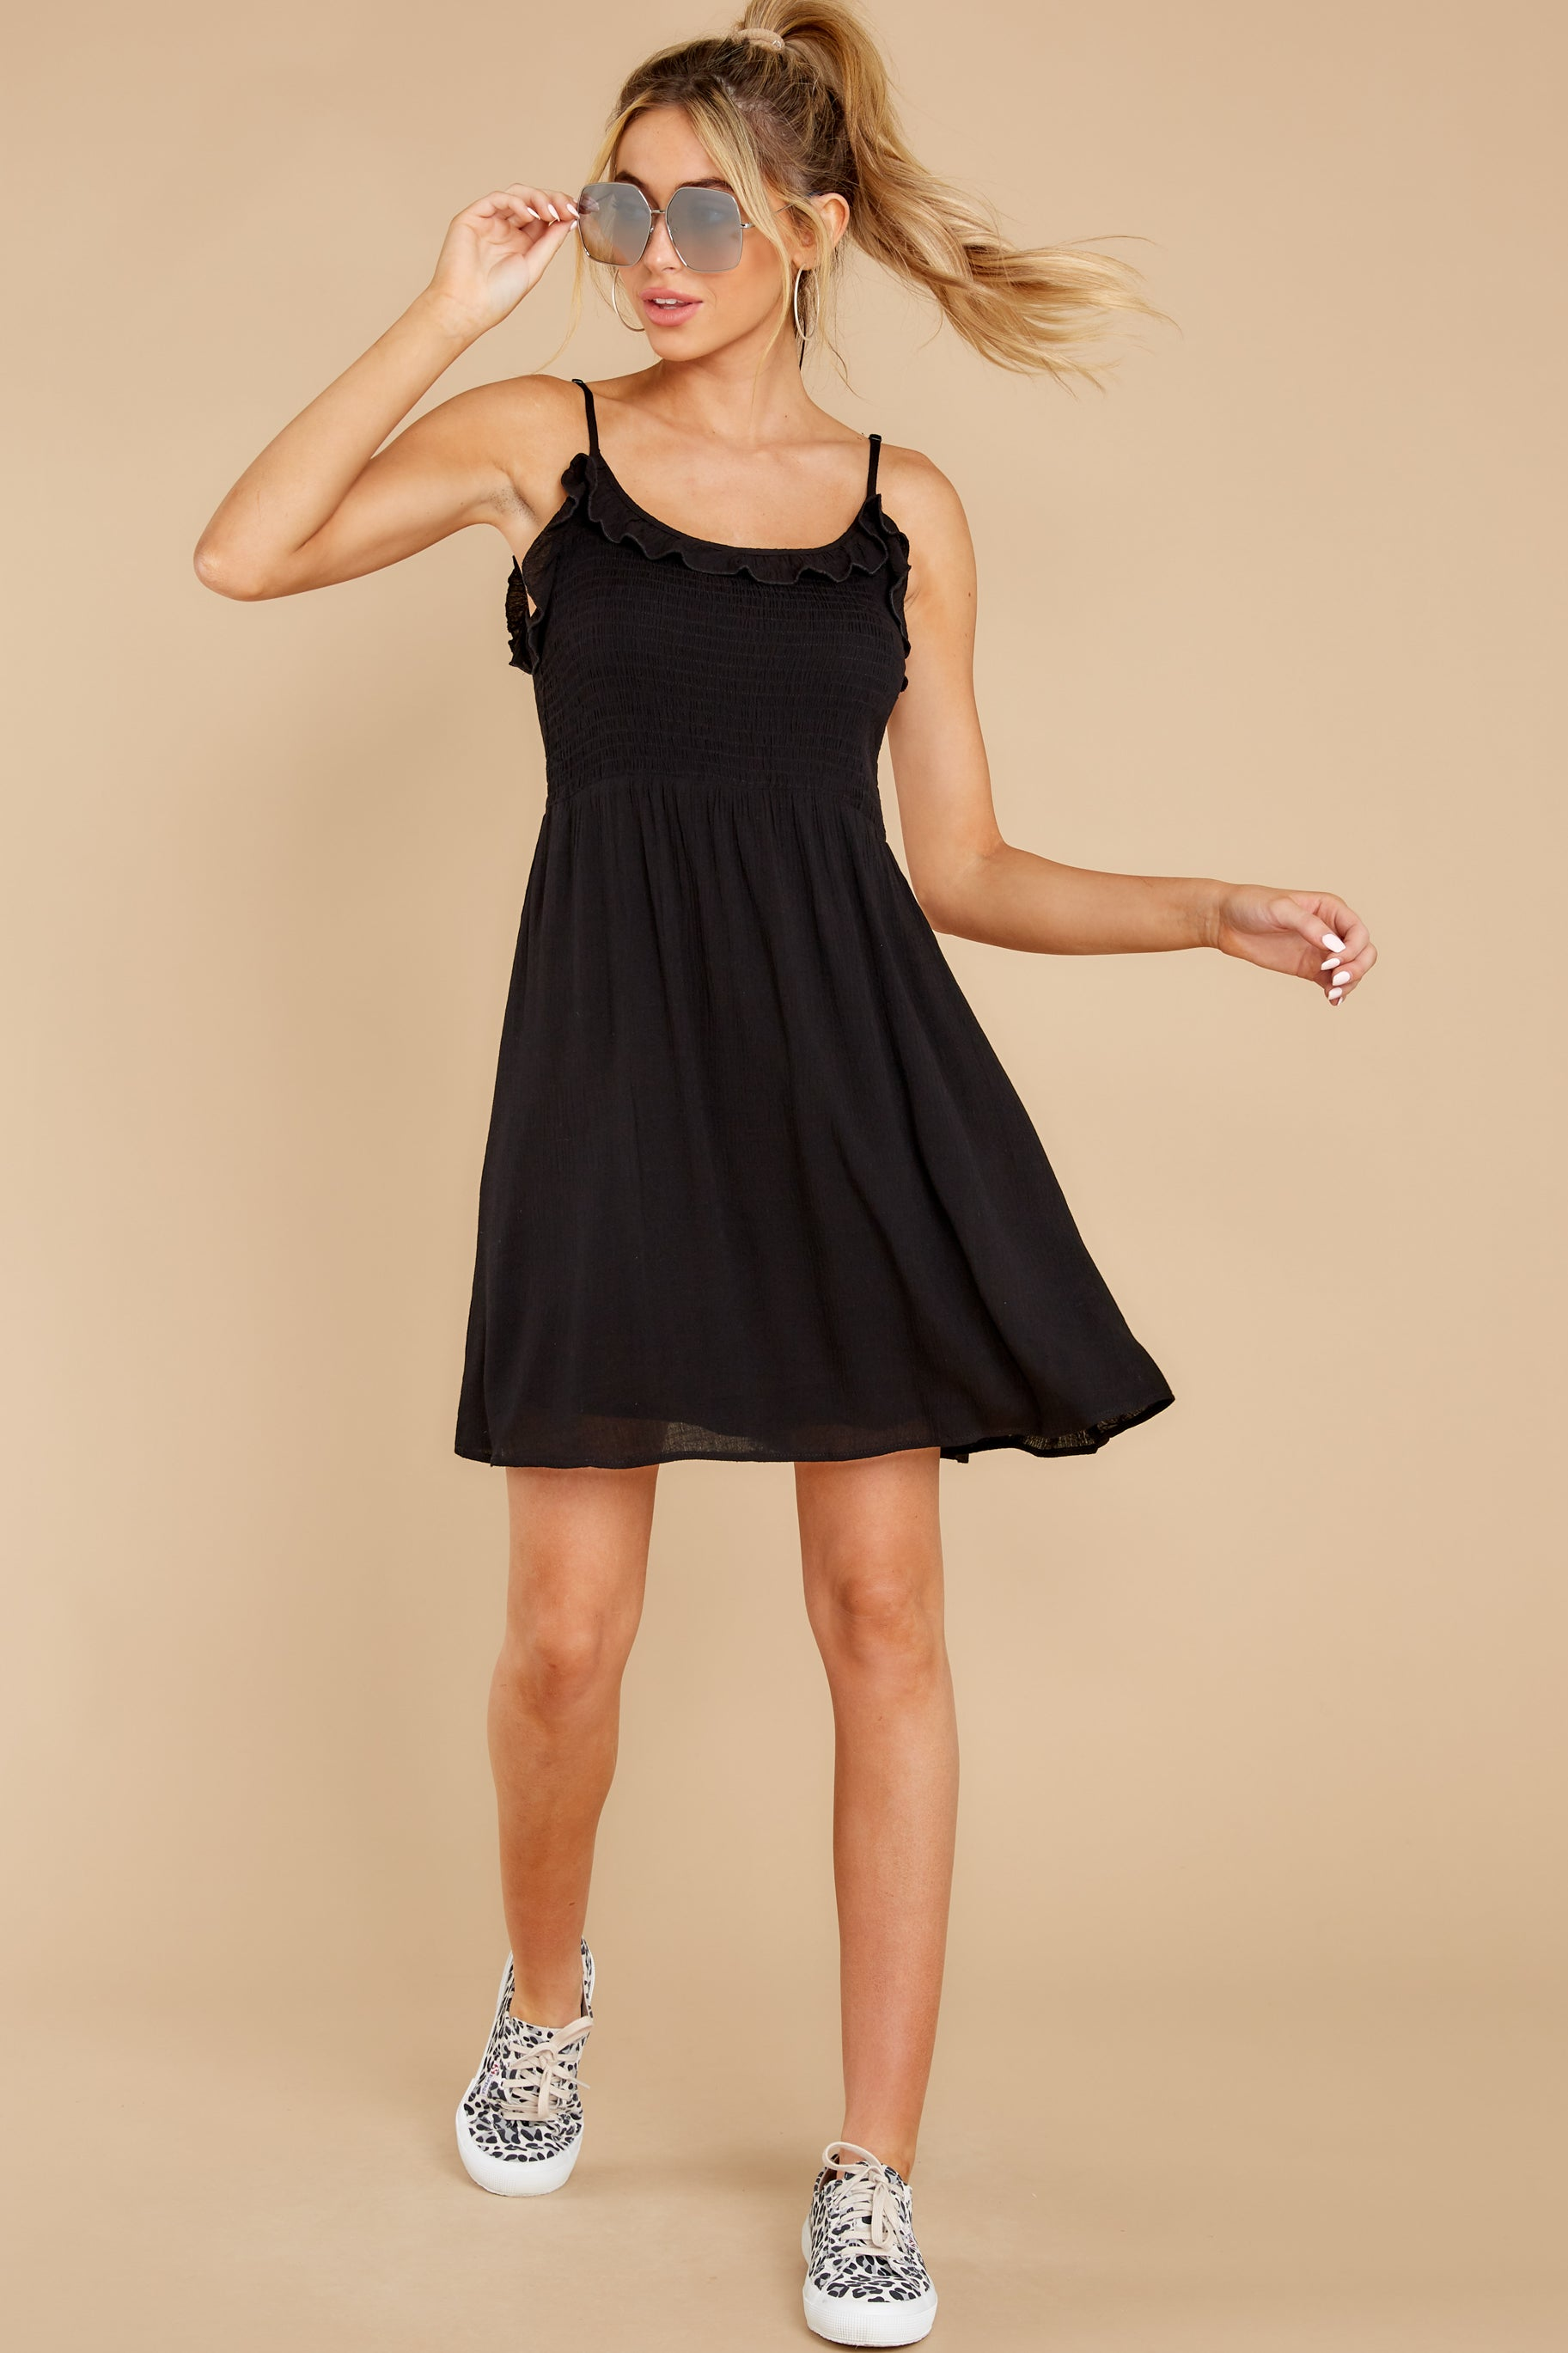 5 As You Are Black Dress at reddress.com